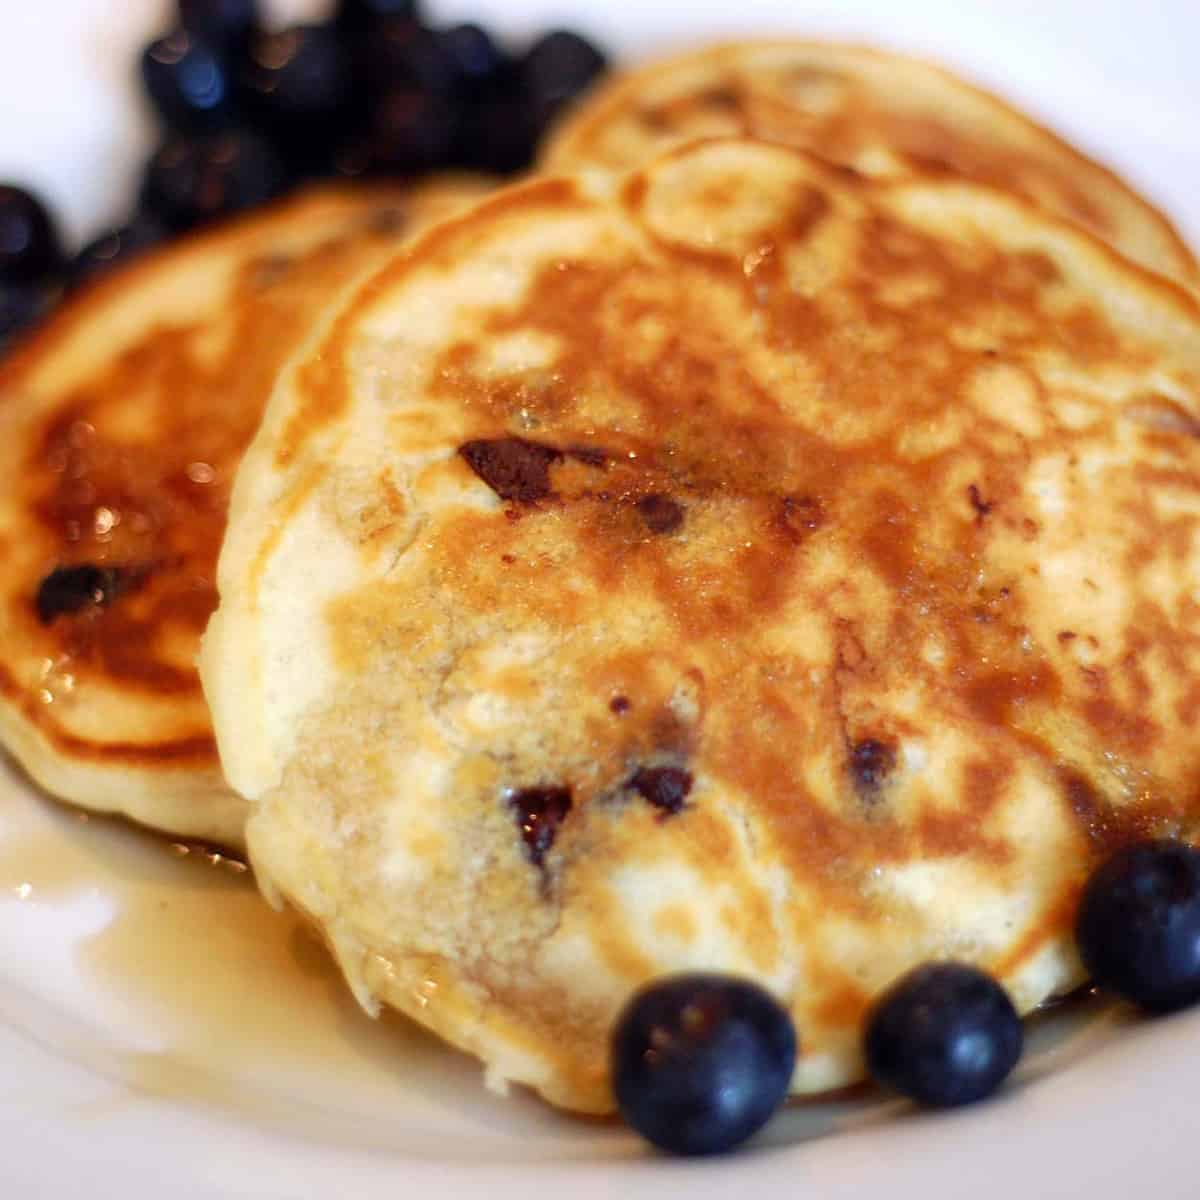 close-up of homemade pancakes with blueberries and syrup on a plate.